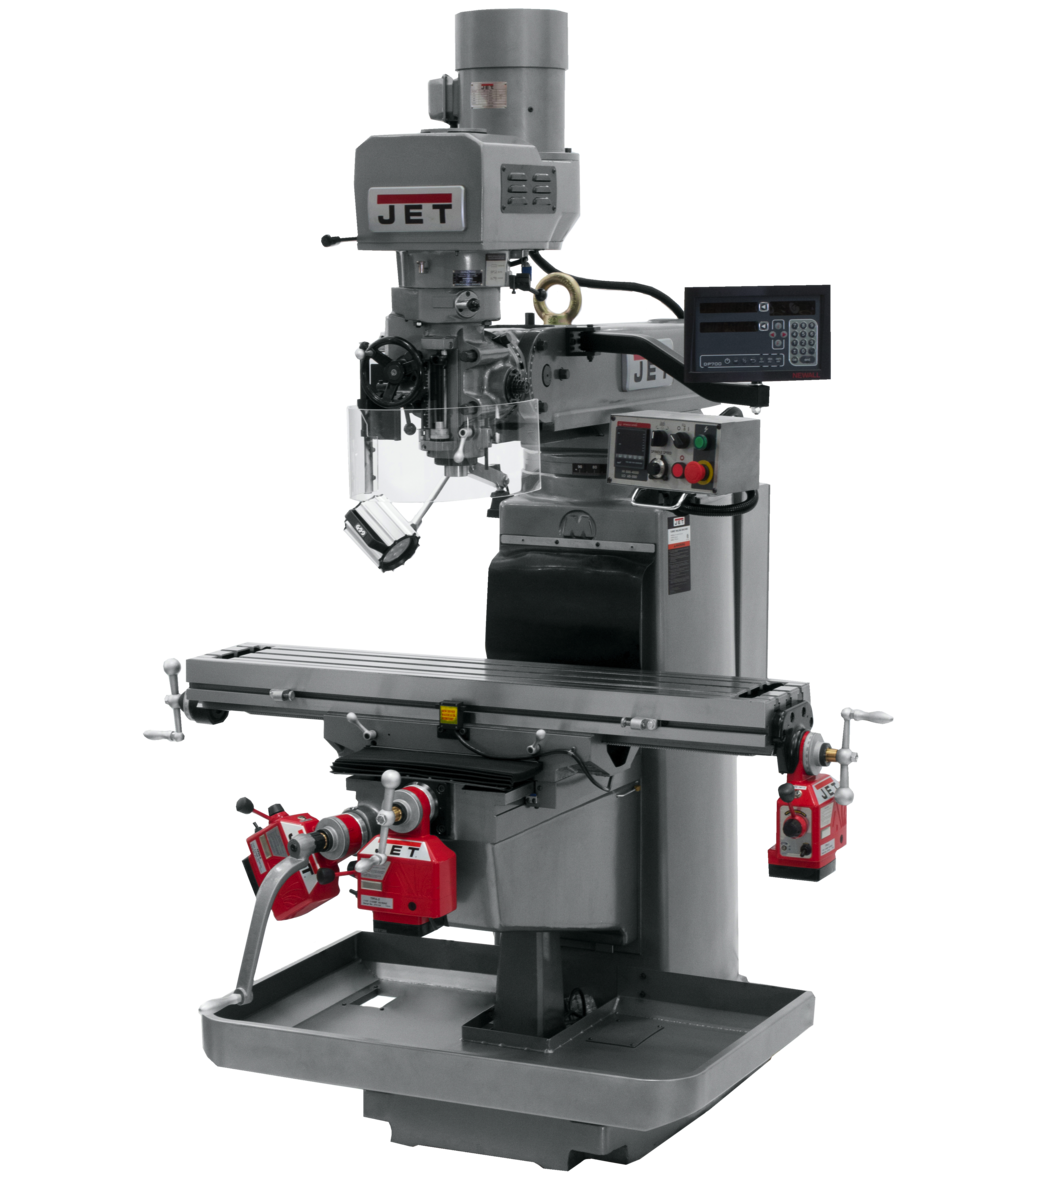 JTM-1050EVS2/230 Mill With 3-Axis Newall DP700 DRO (Knee) With X, Y and Z-Axis Powerfeeds